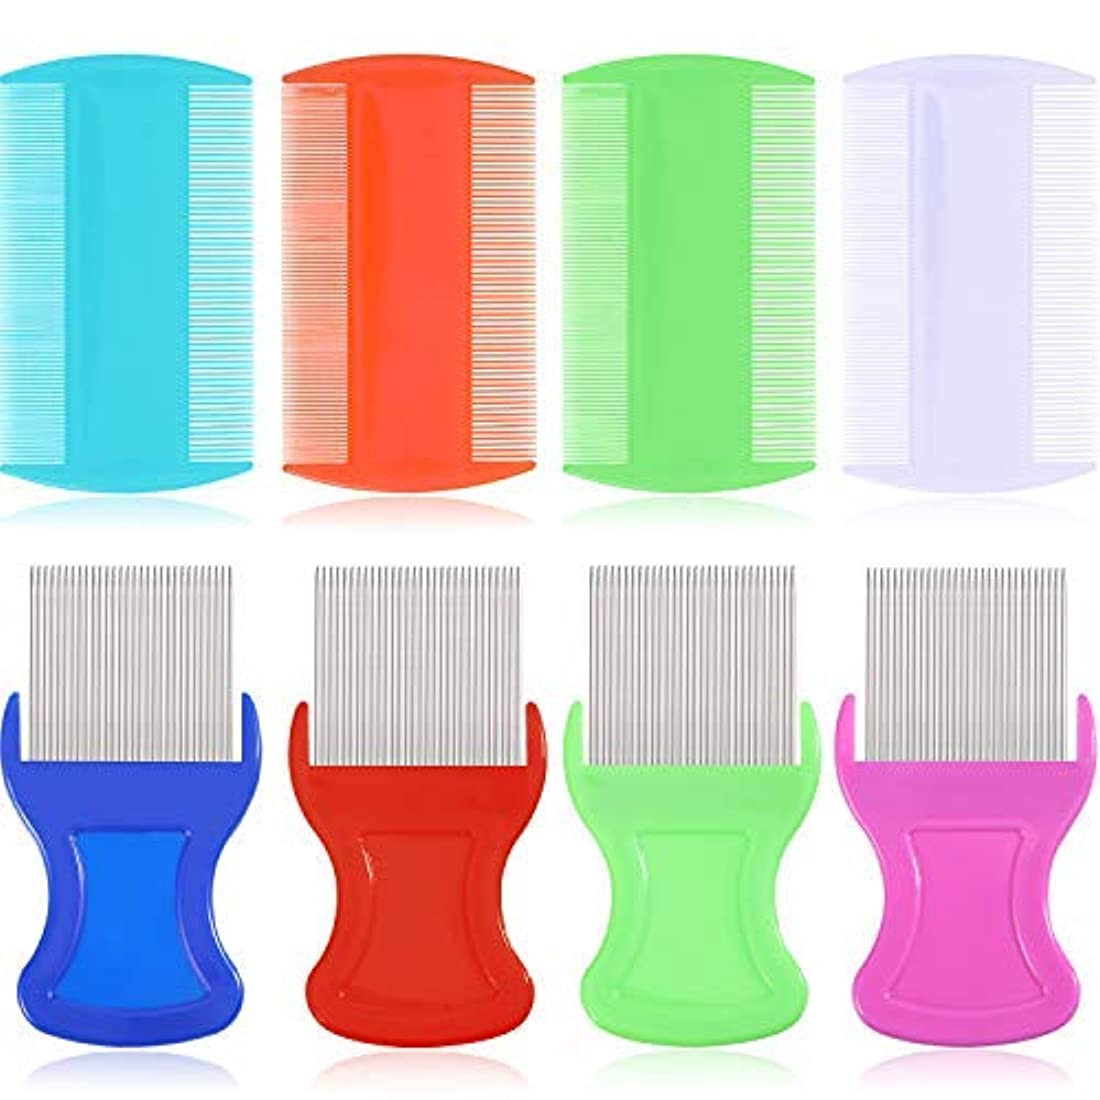 チート急降下メイエラ8 Pieces Flea Lice Comb Lice Removal Combs Include 4 Pieces Nit Remover with Metal Teeth and 4 Pieces Double Sided Teeth Combs for Hair and Heads [並行輸入品]